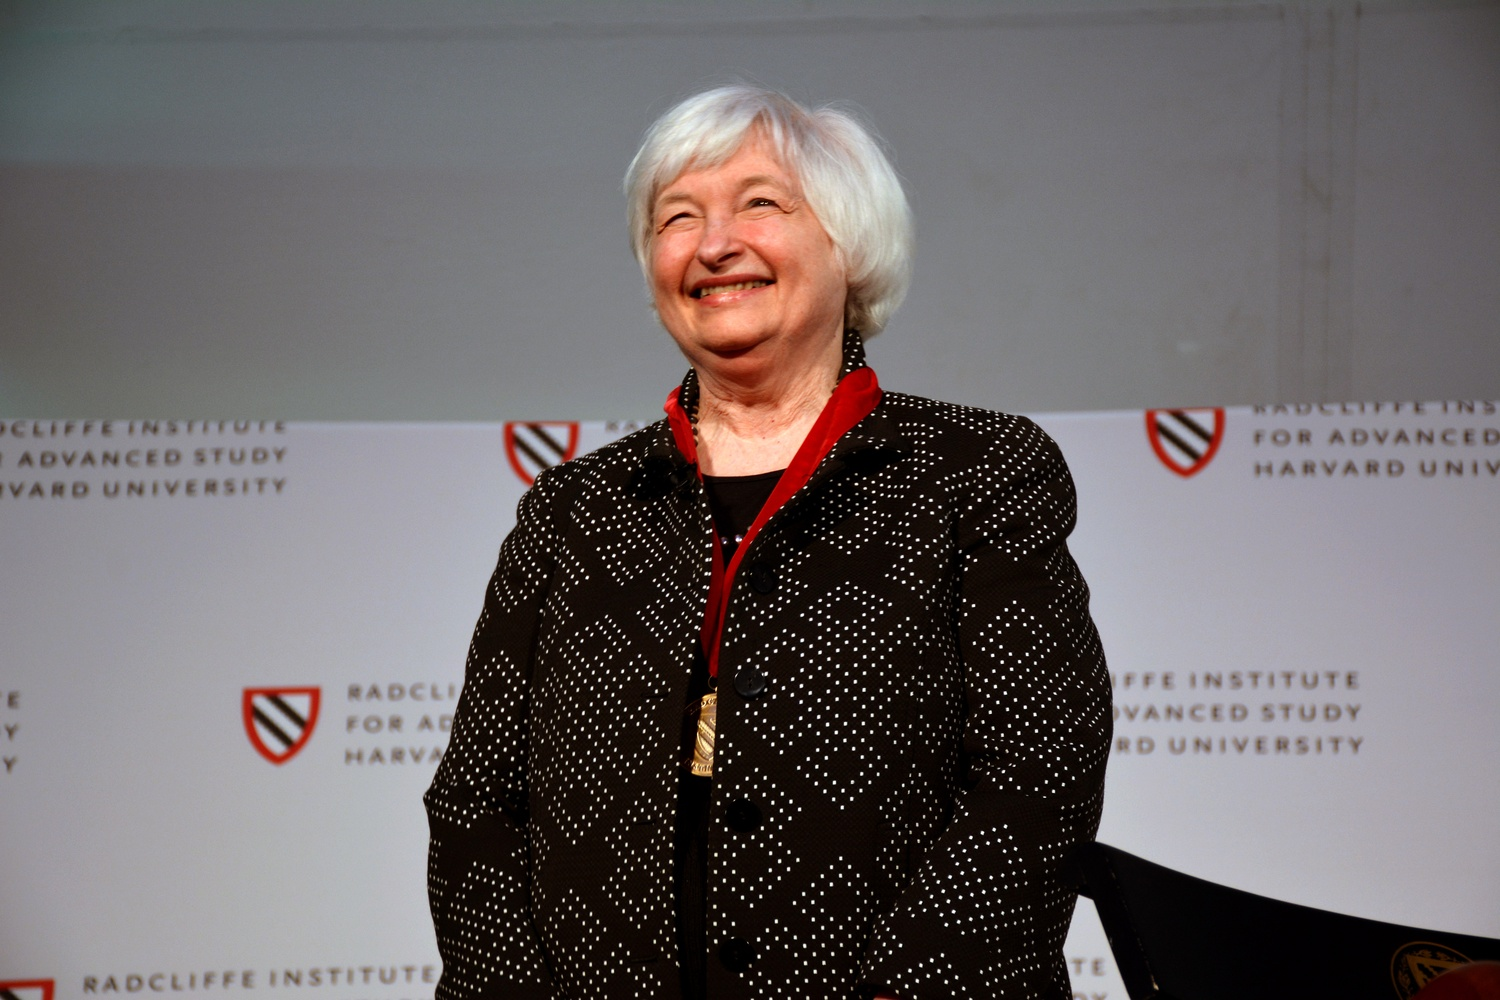 Janet Yellen, the former chair of the Federal Reserve Bank, received the Radcliffe Medal in 2016. Now she's speaking out in favor of Harvard's race-conscious admissions policies.